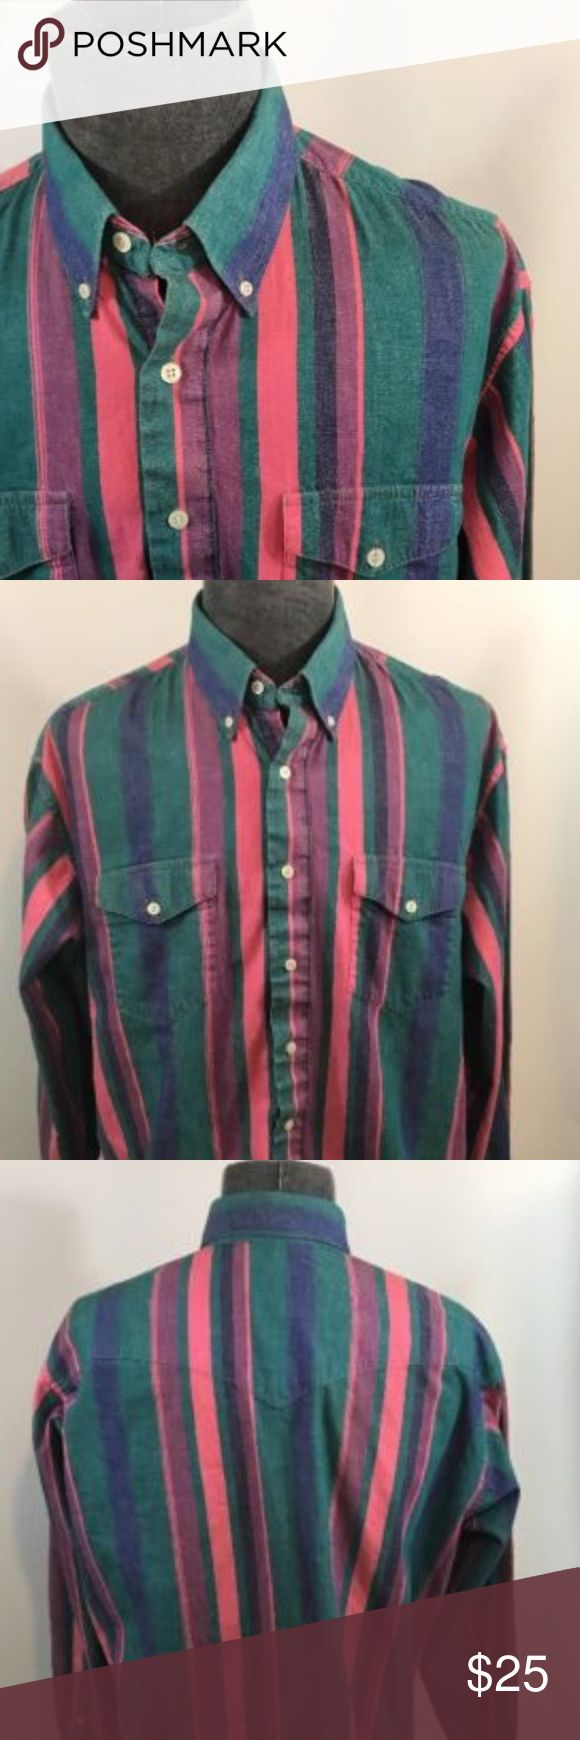 Wrangler Cowboy Regular Fit 18-35 Striped Shirt Features Cowboy Cut  Sz. 18-35 100% Cotton Multi-Color Measurements: Pit to Pit: 25.5 inches Length: 34 inches  Sleeves:  25.5 Shoulders: 22.5 Wrangler Shirts Casual Button Down Shirts